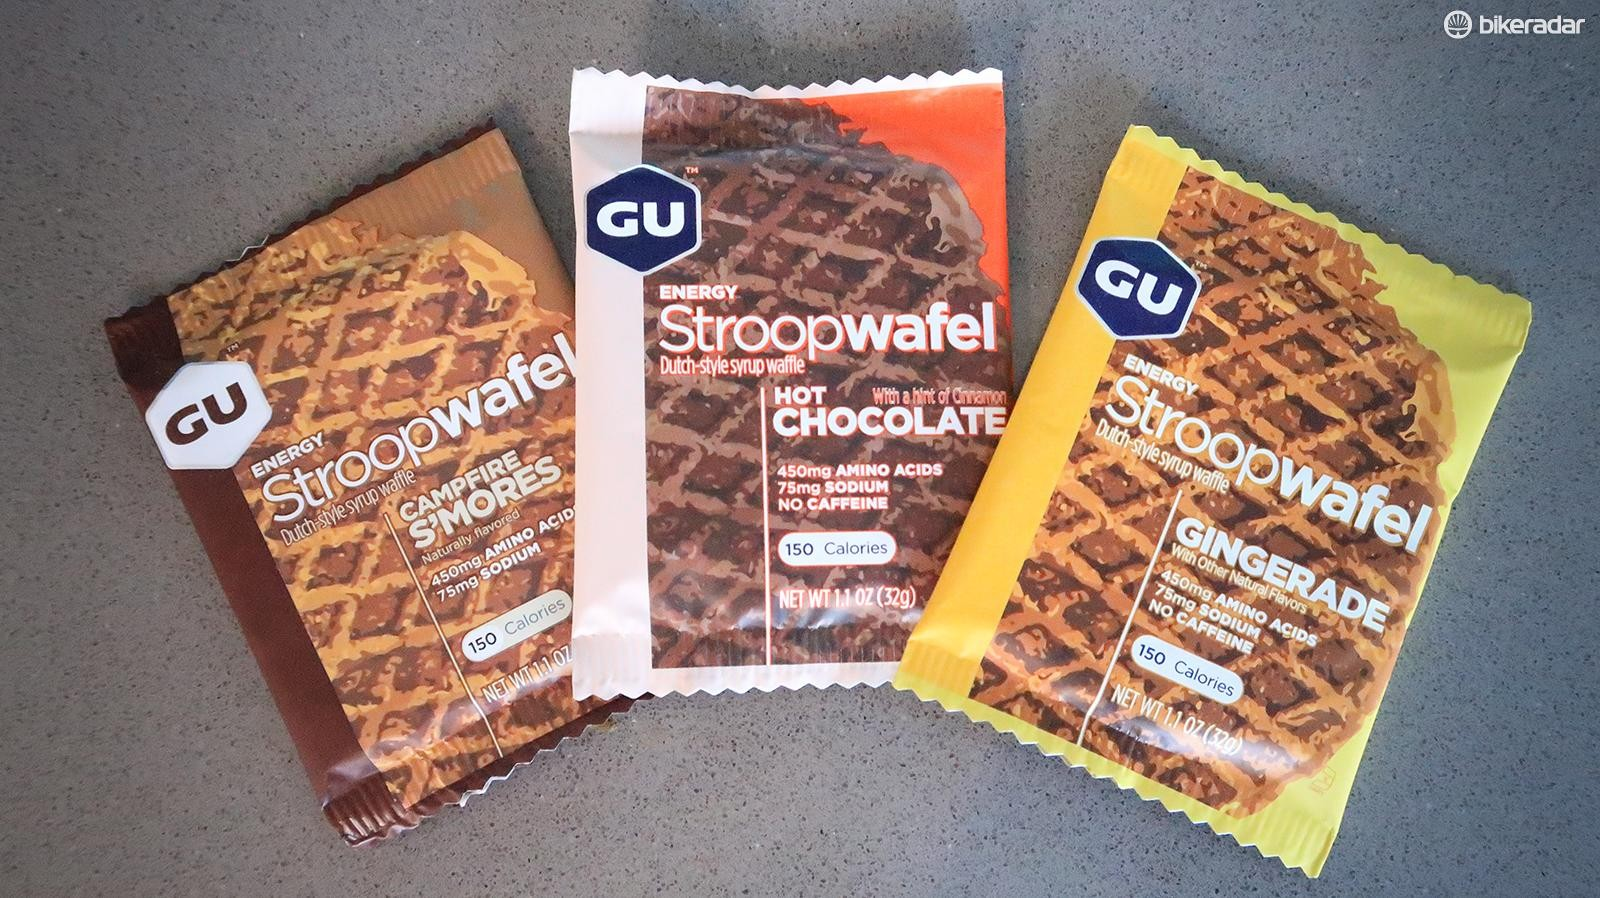 New and tasty Stroopwafels from GU